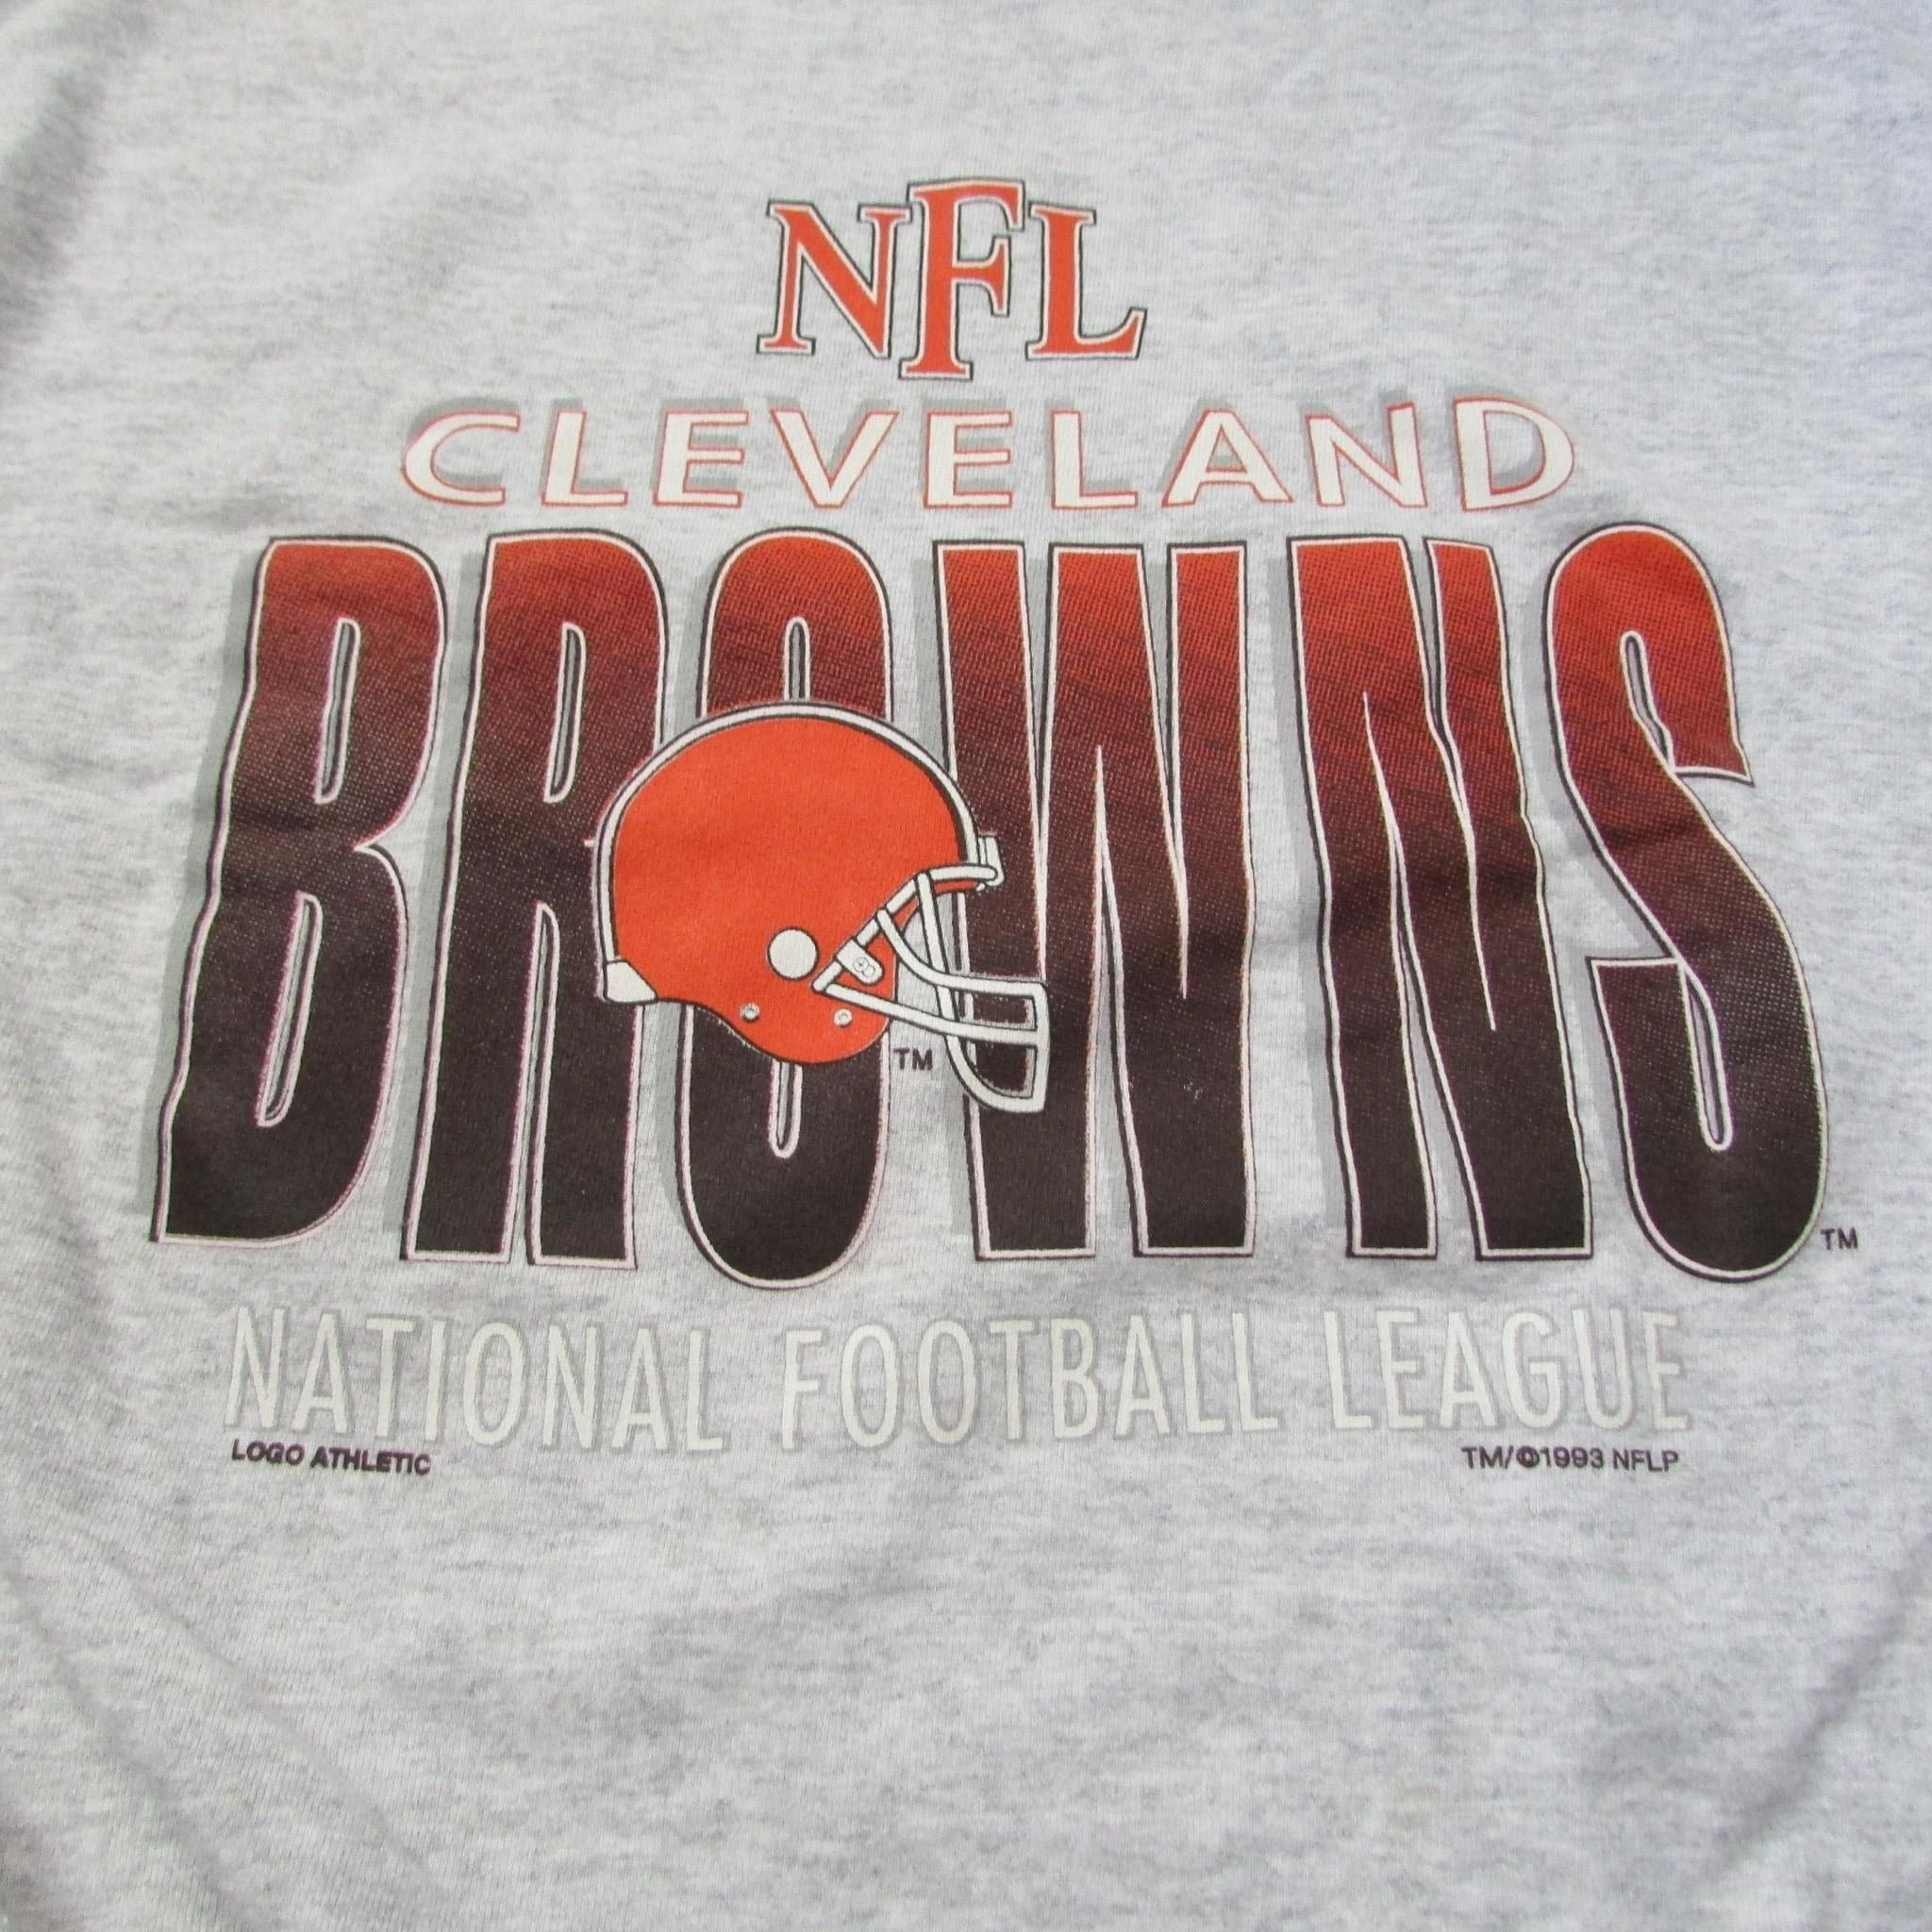 Cleveland Browns Vintage NFL Sweater LOGO ATHLETIC Sz L